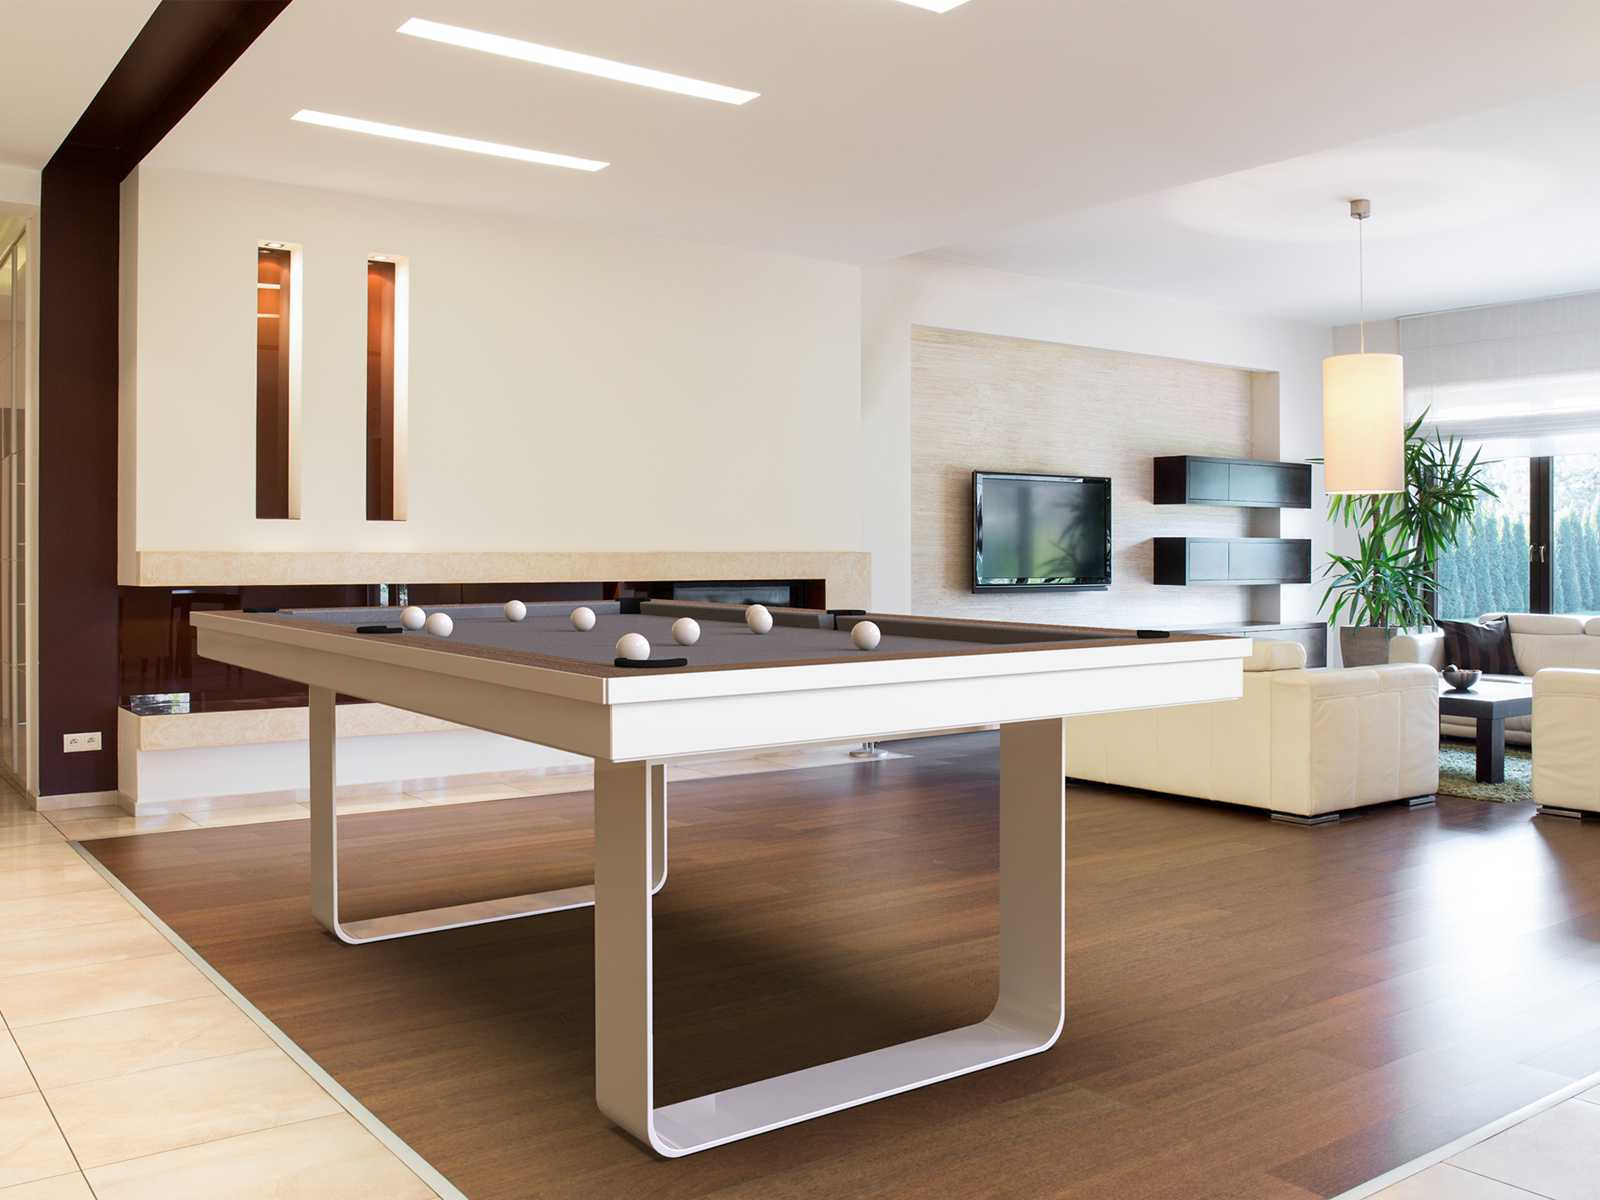 Pool Table mod. Mistral White